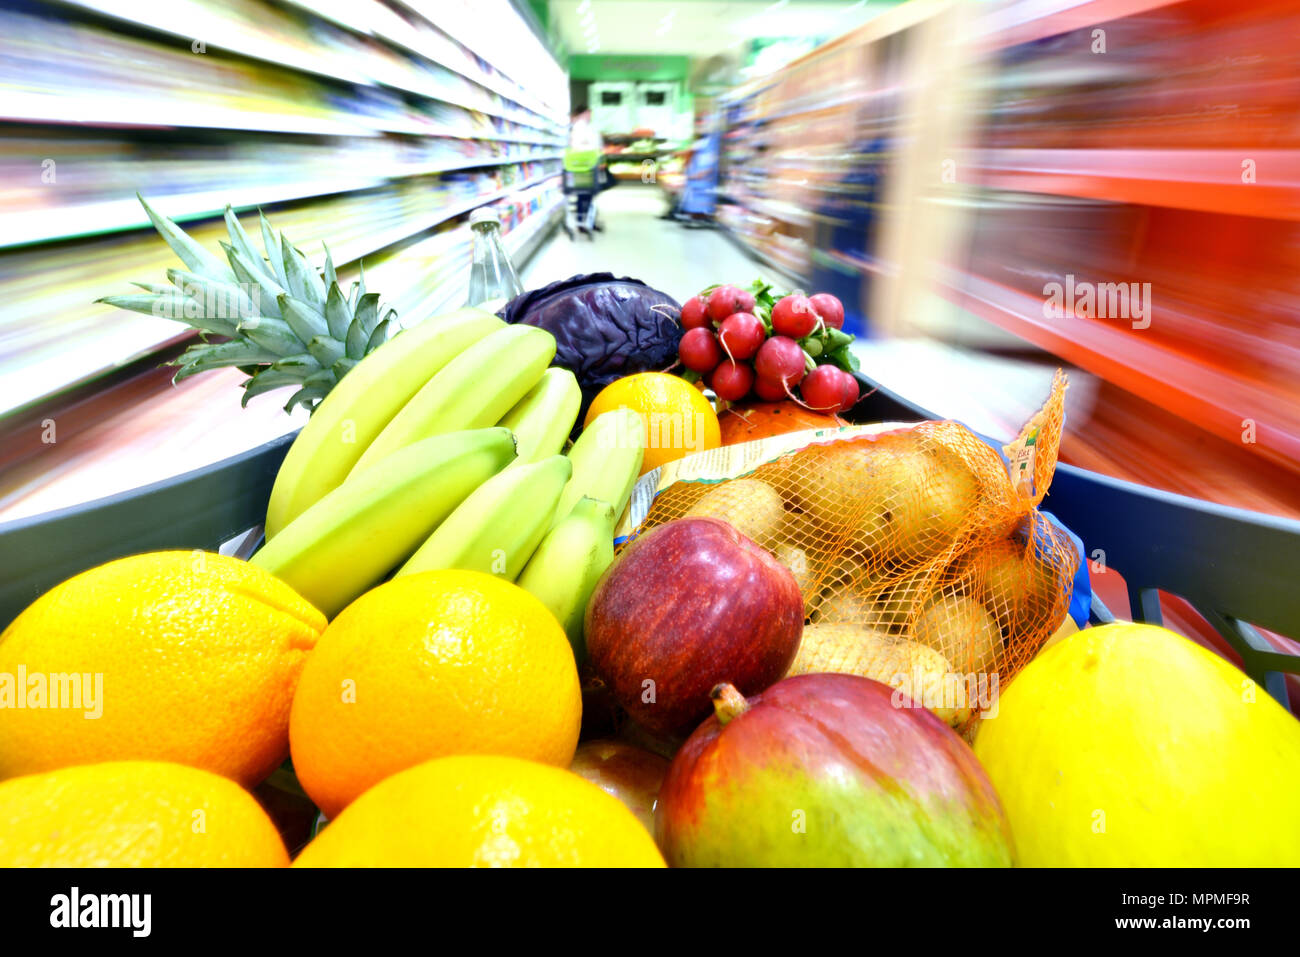 grocery shopping in the supermarket - filled shopping trolley with fresh fruit and vegetables Stock Photo